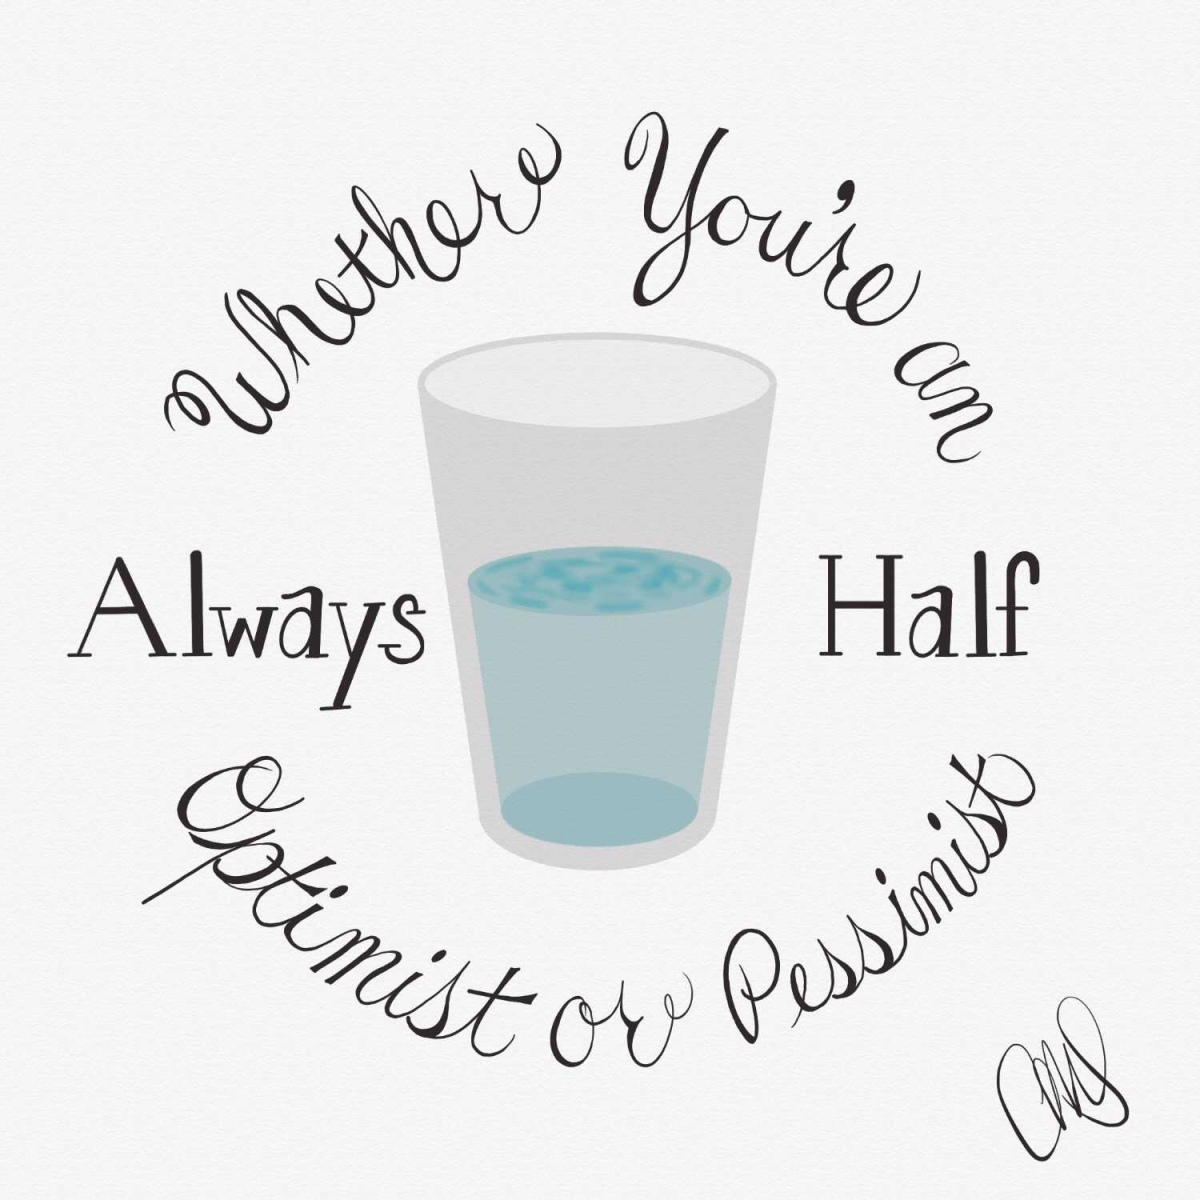 """image of half filled glass of water, text circling the glass reads """"whether you're an optimist or pessimist, always half"""""""